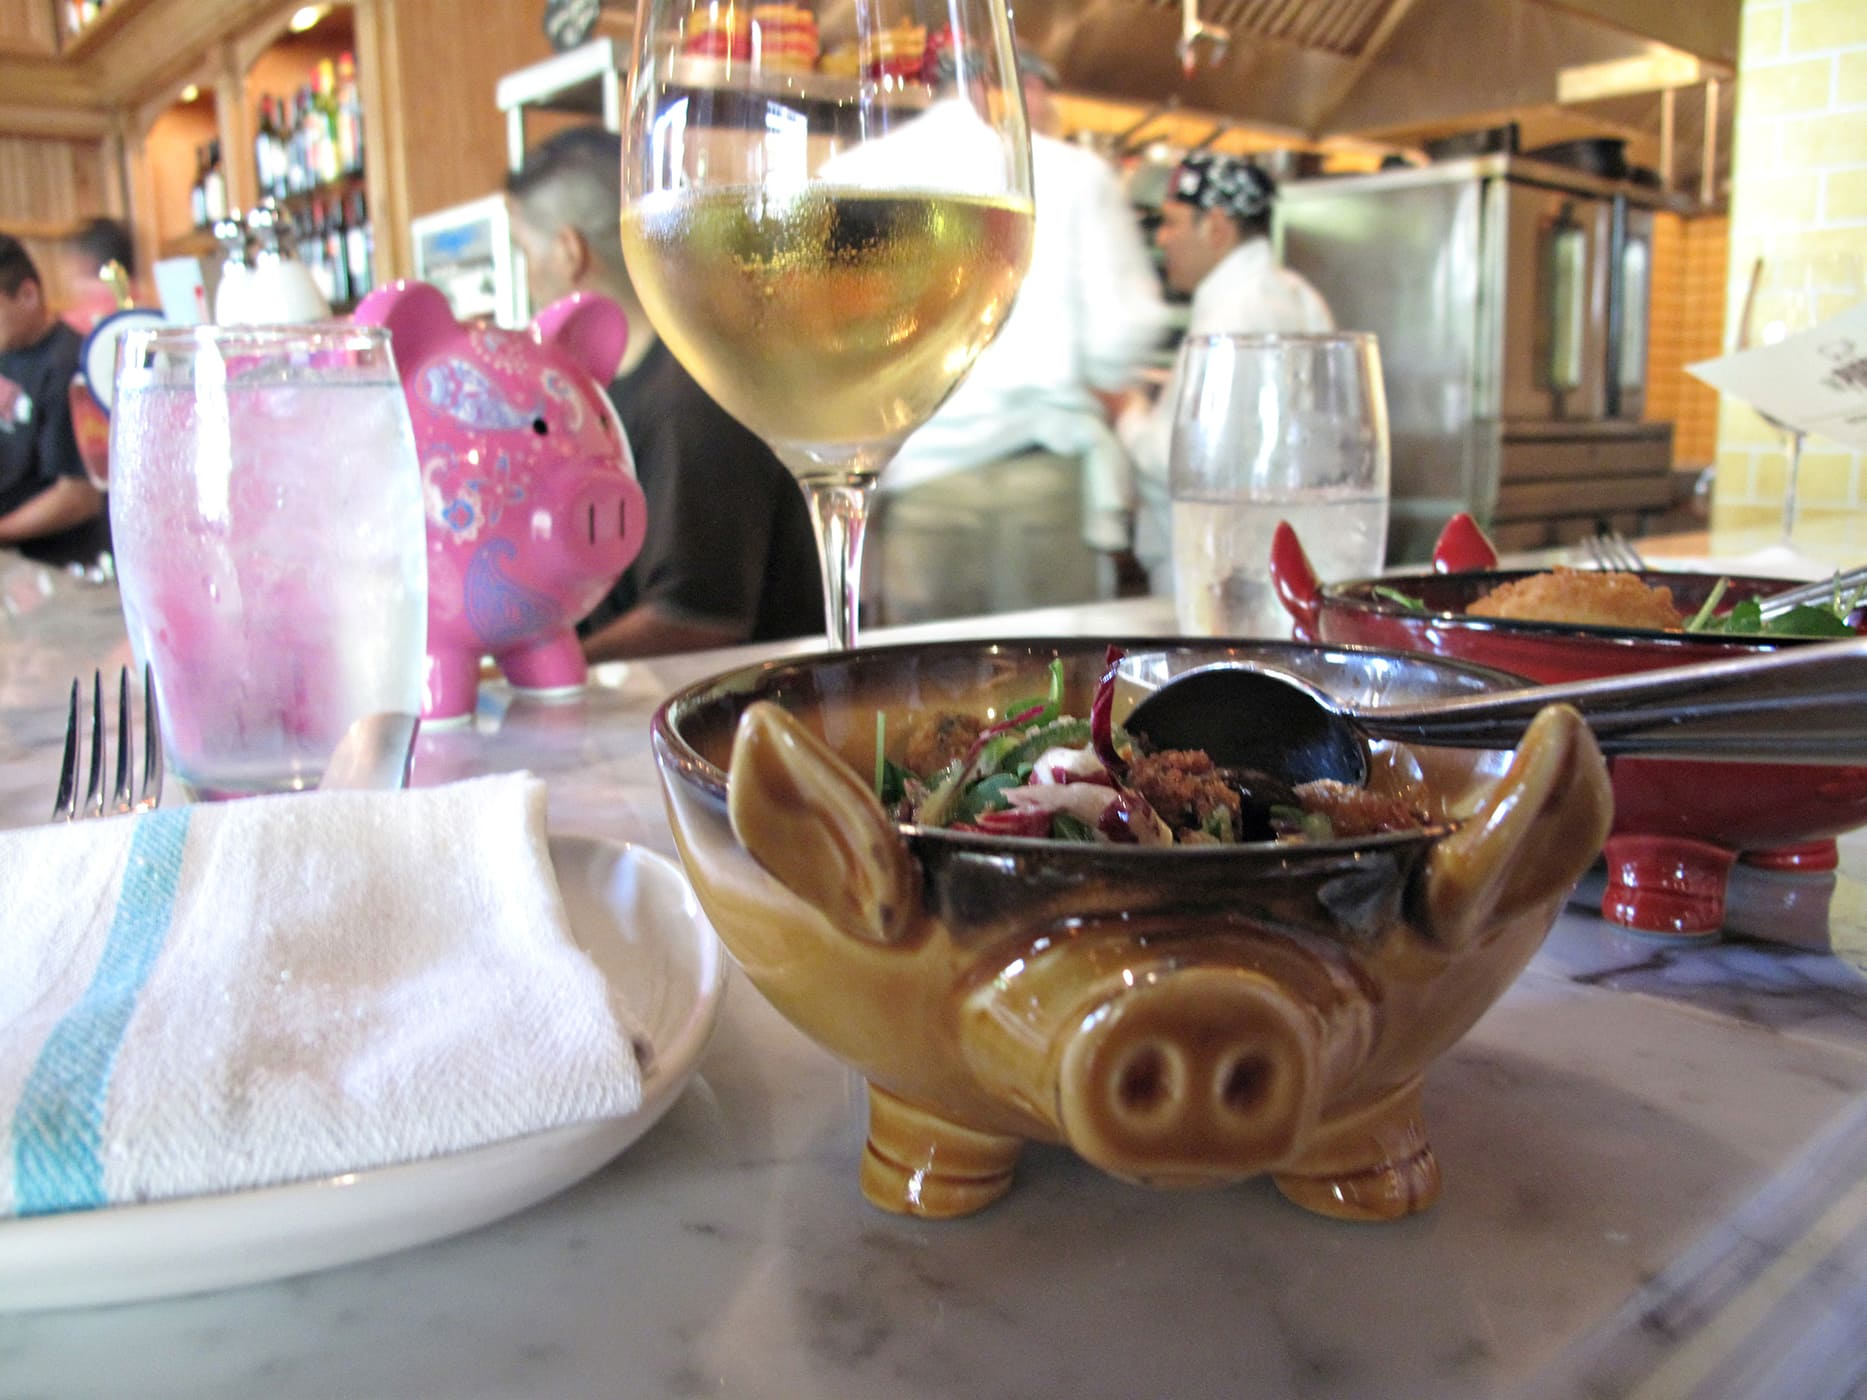 The Purple Pig in Chicago, Illinois